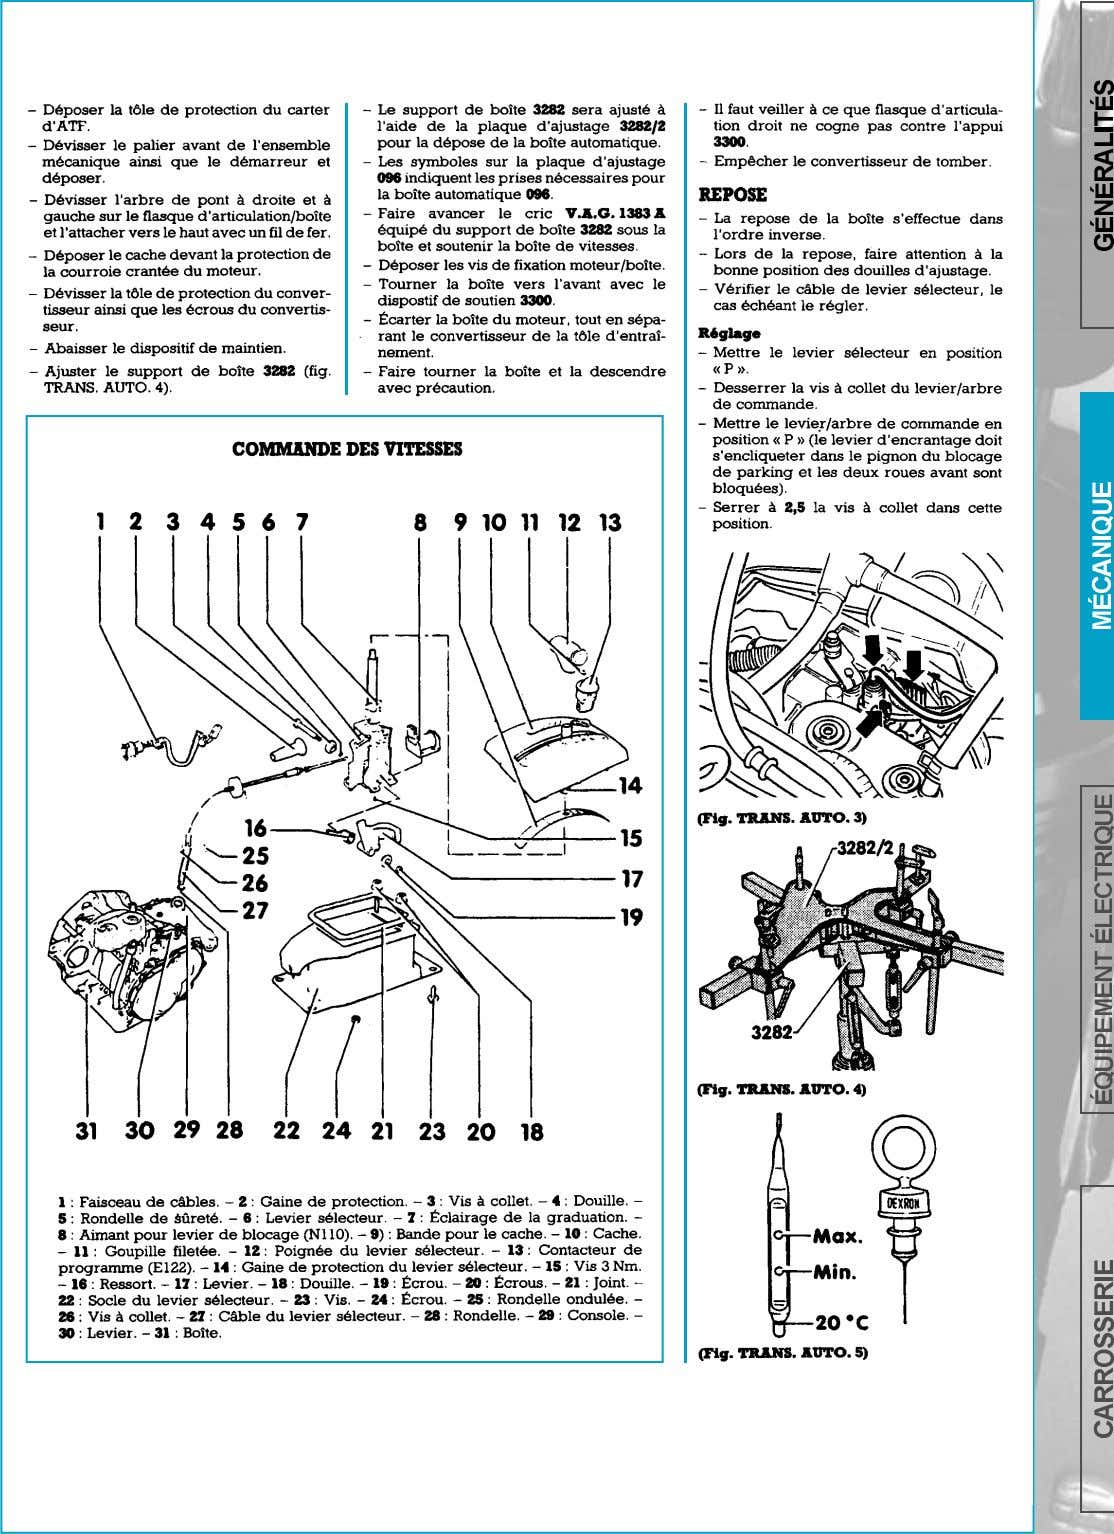 TRANSMISSION AUTOMATIQUE   page 140